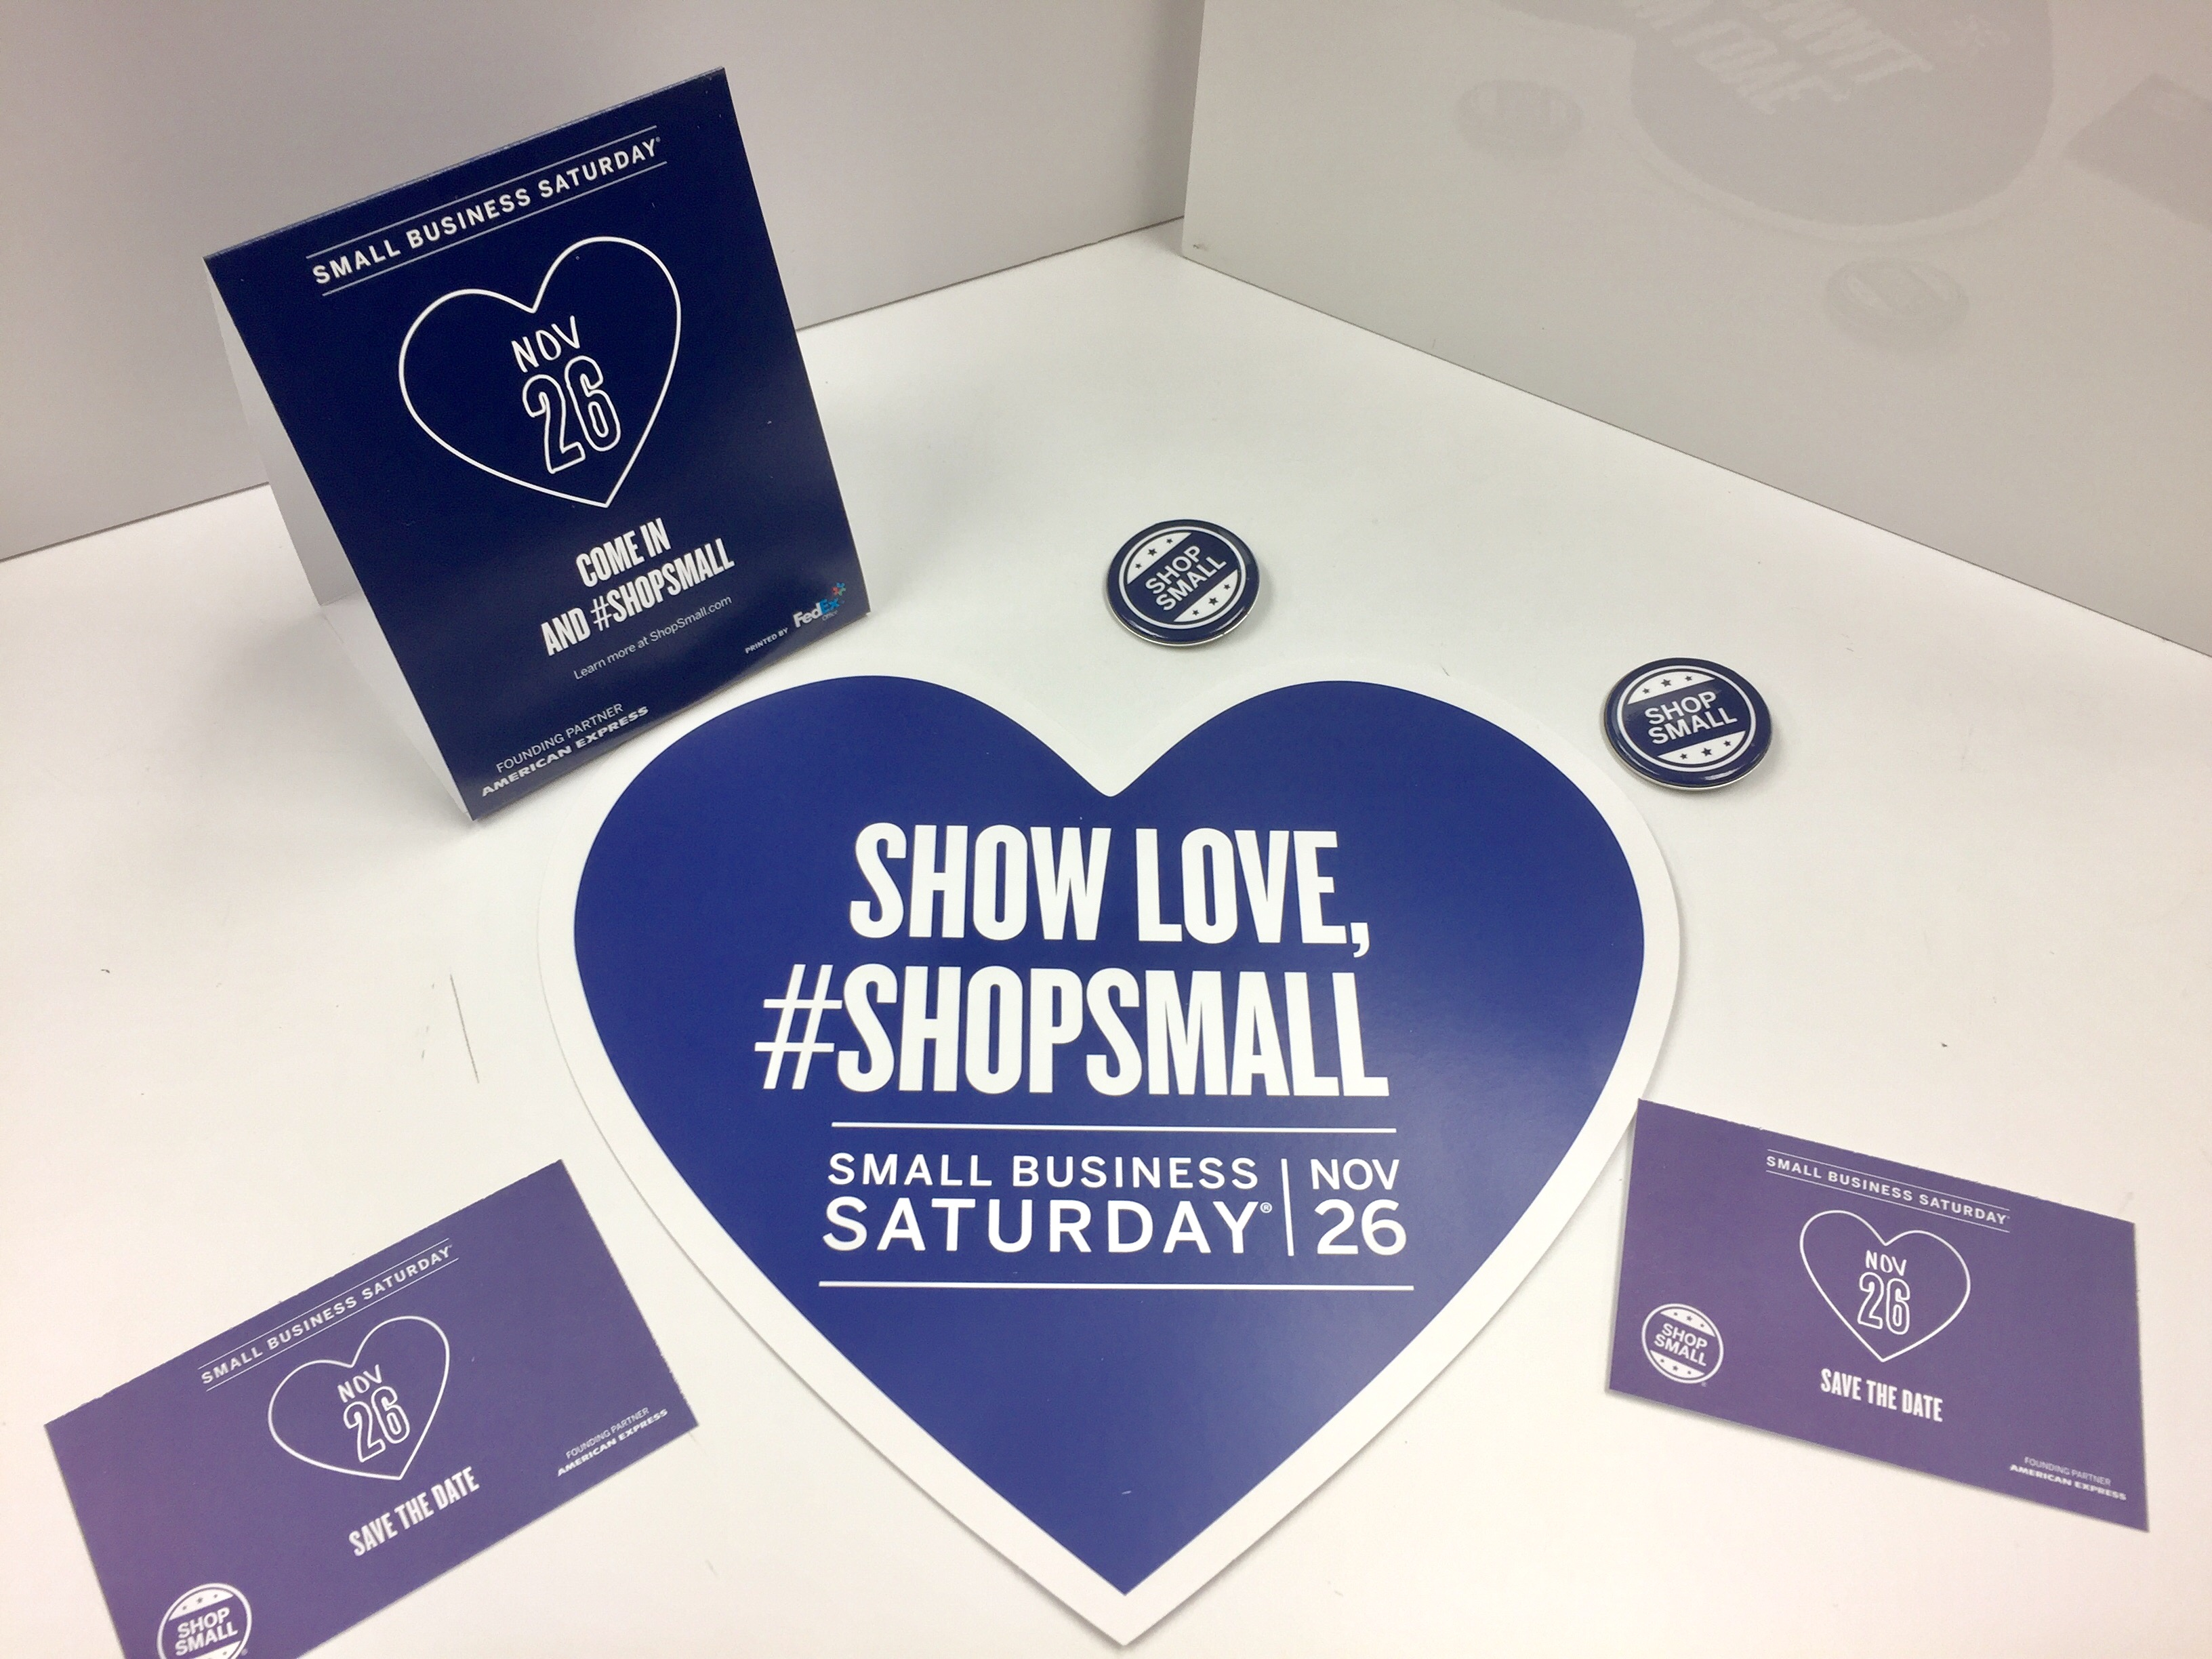 Happenings at The Den: Small Business Saturday